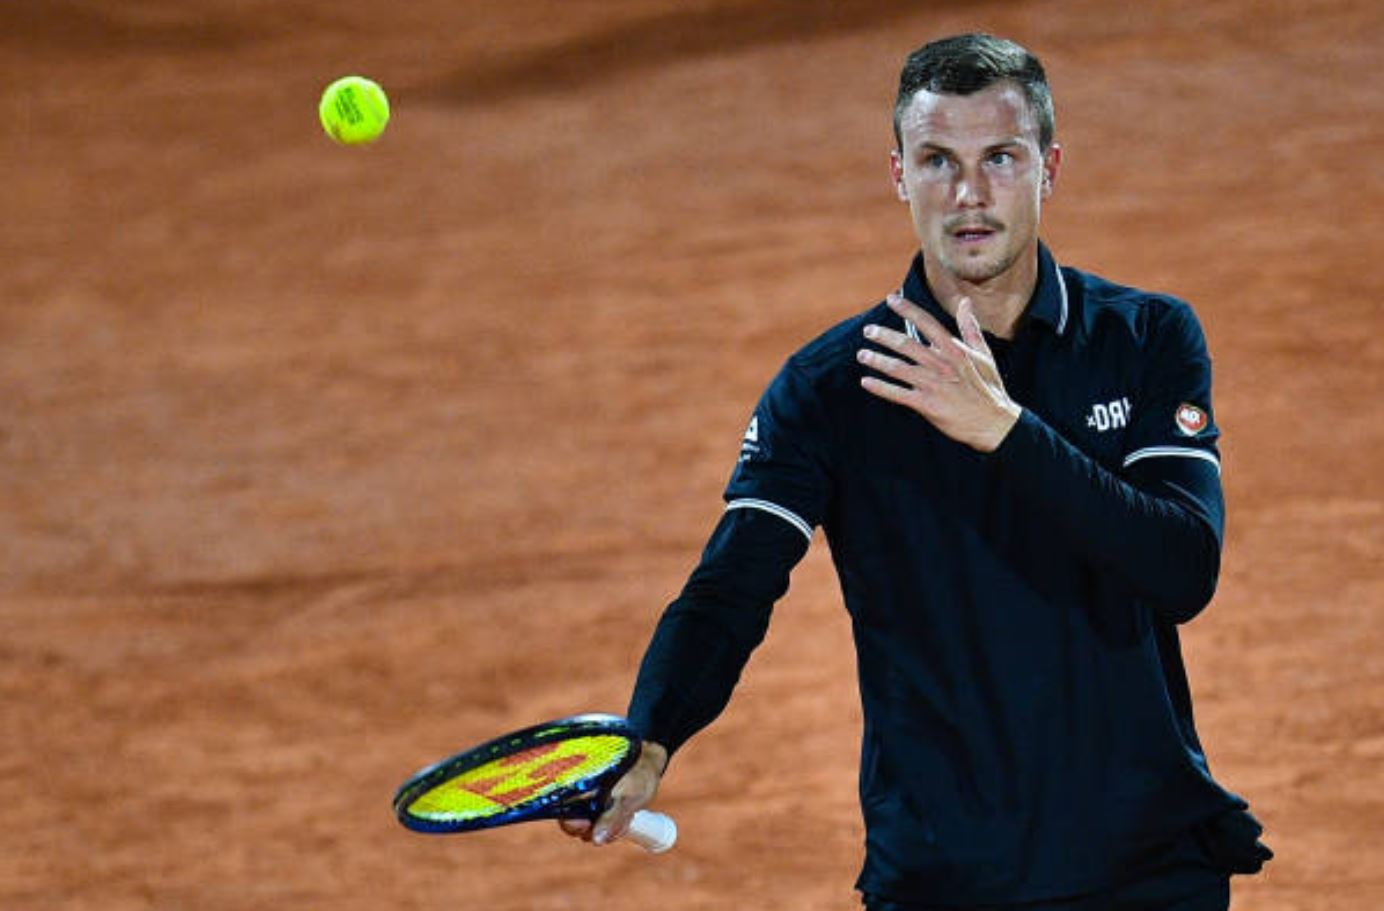 Statisfaction: Roland Garros, Day 2, By the Numbers